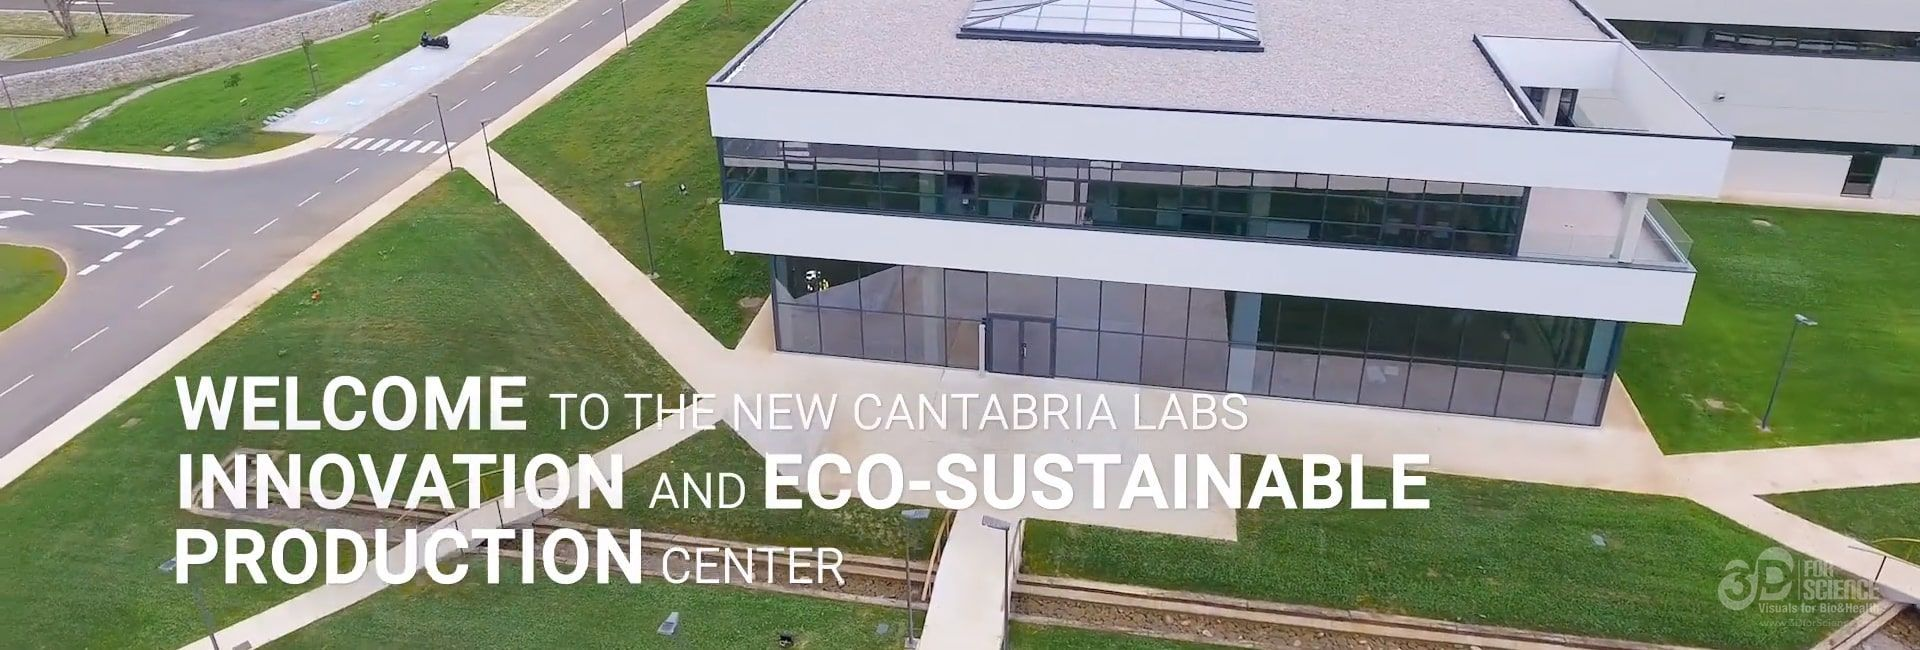 innovation center cantabria labs